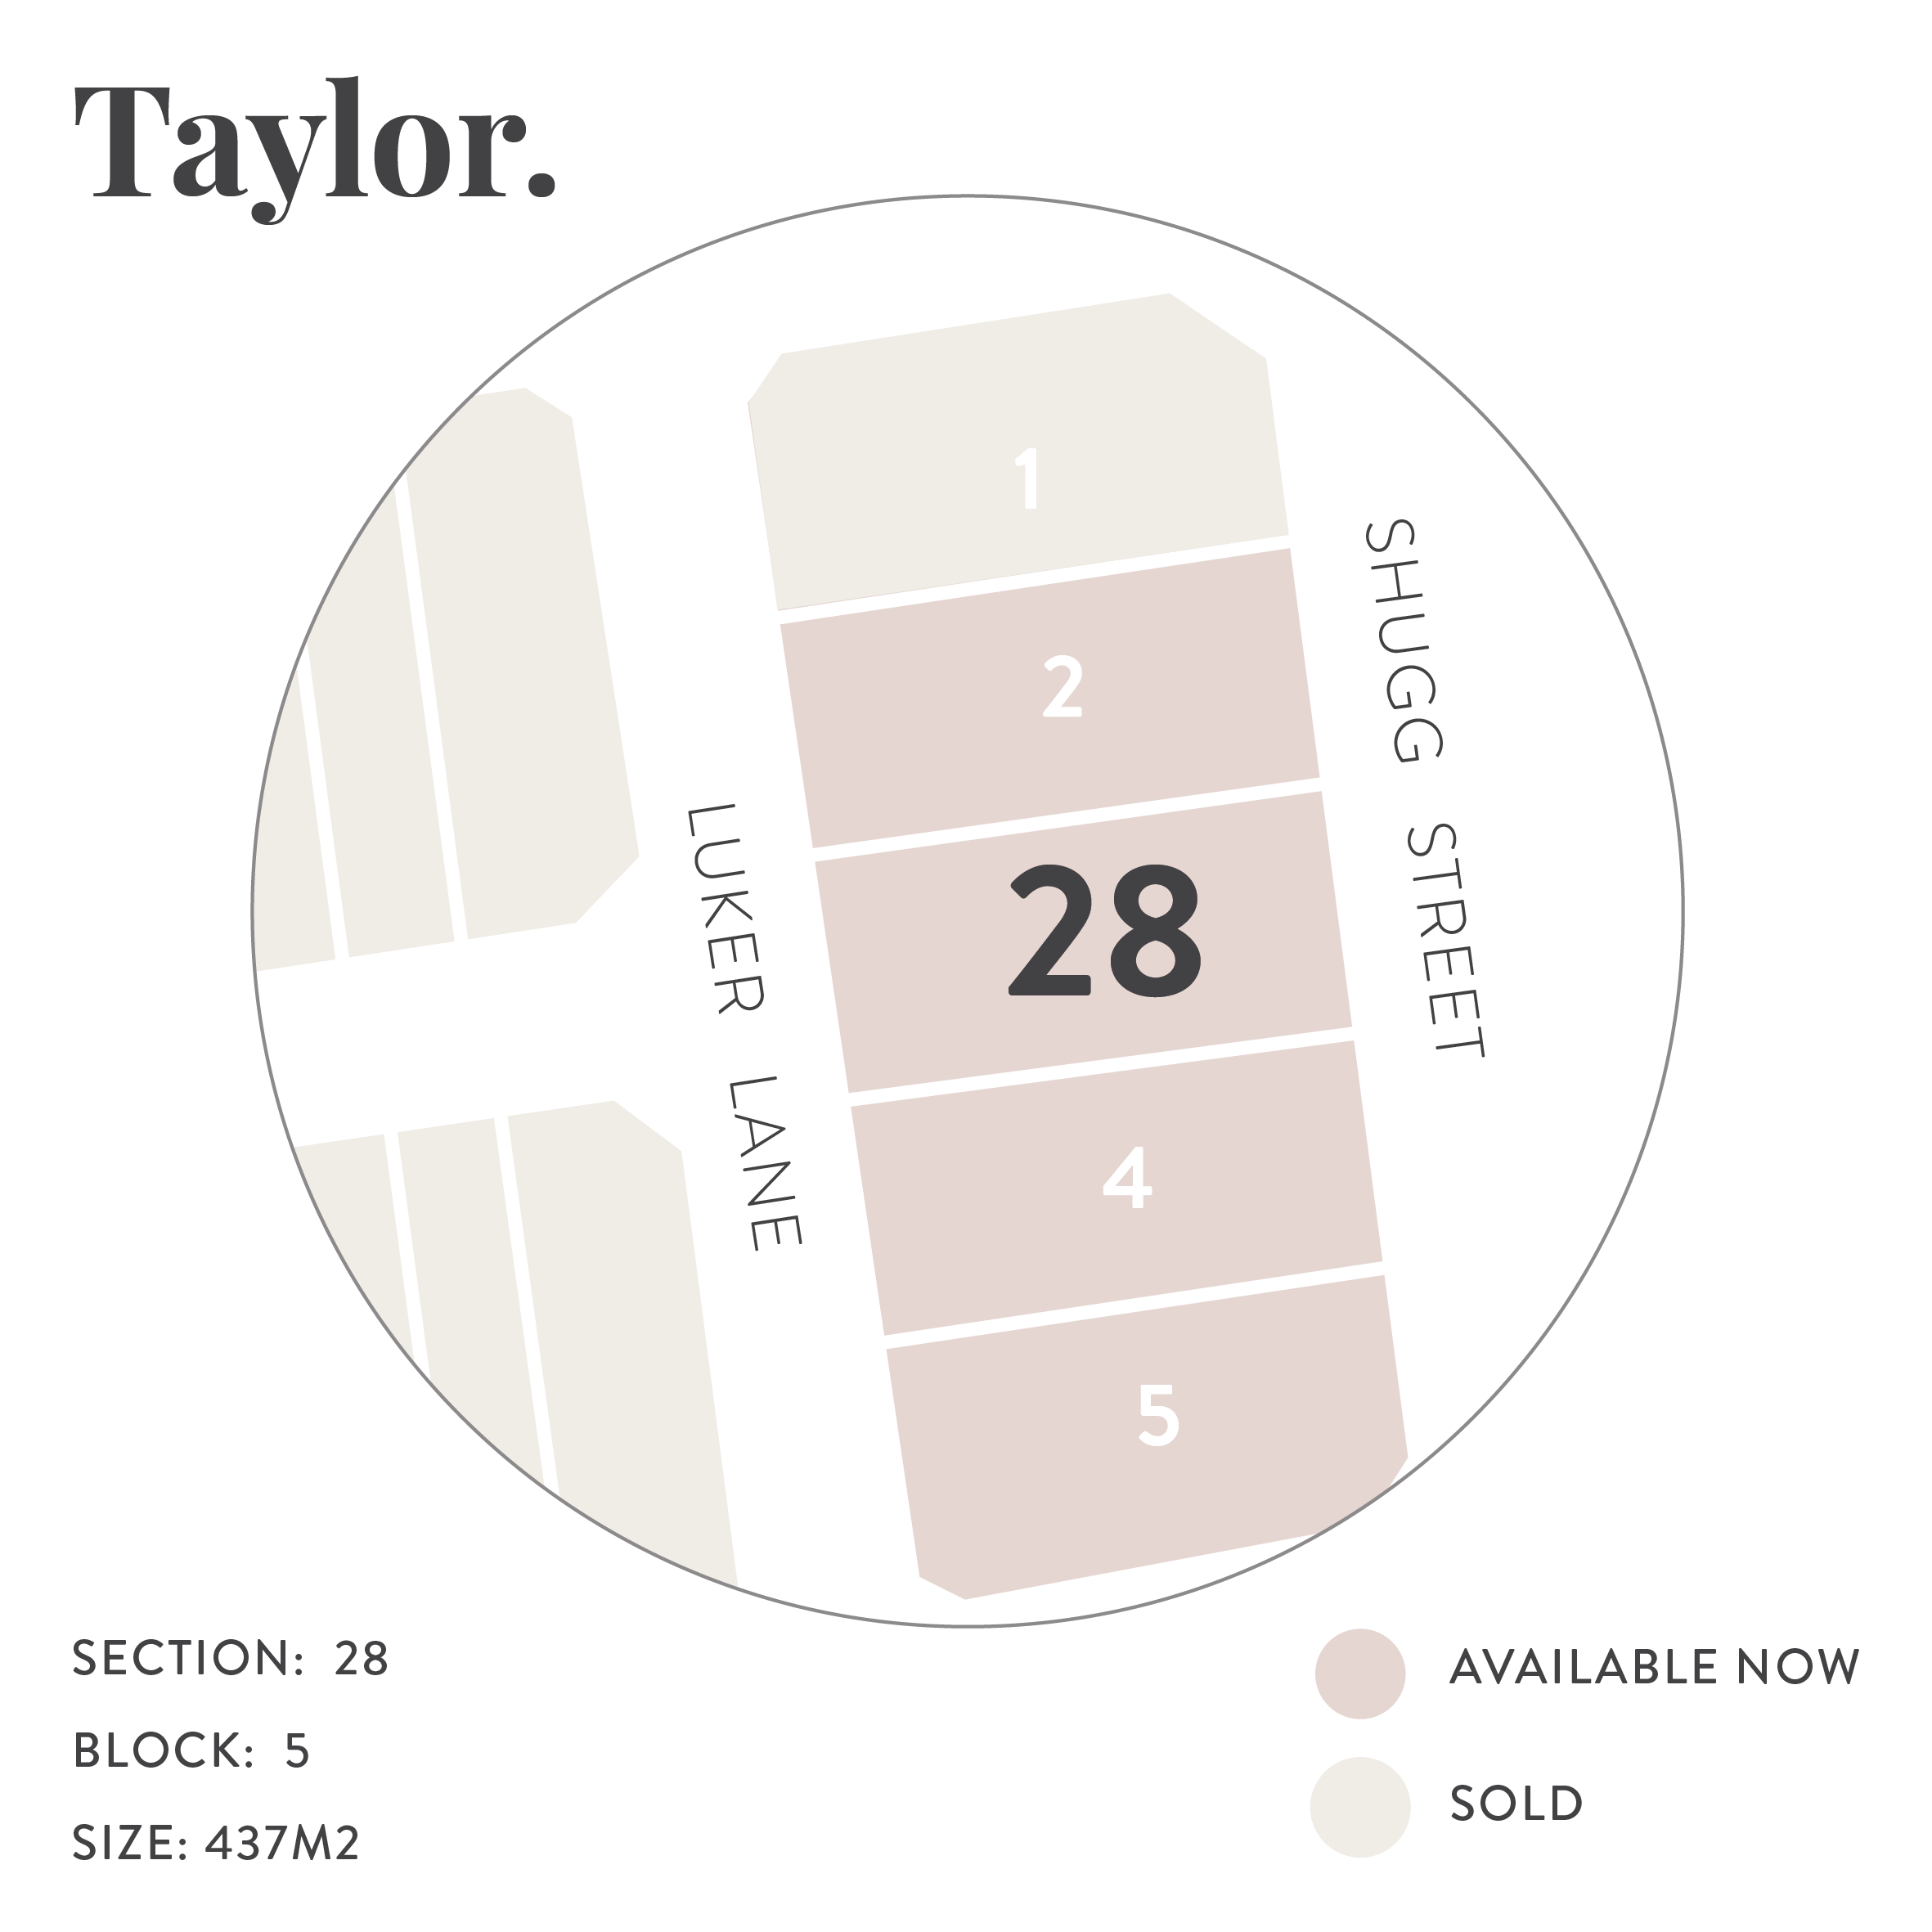 Taylor Land Images-05.png